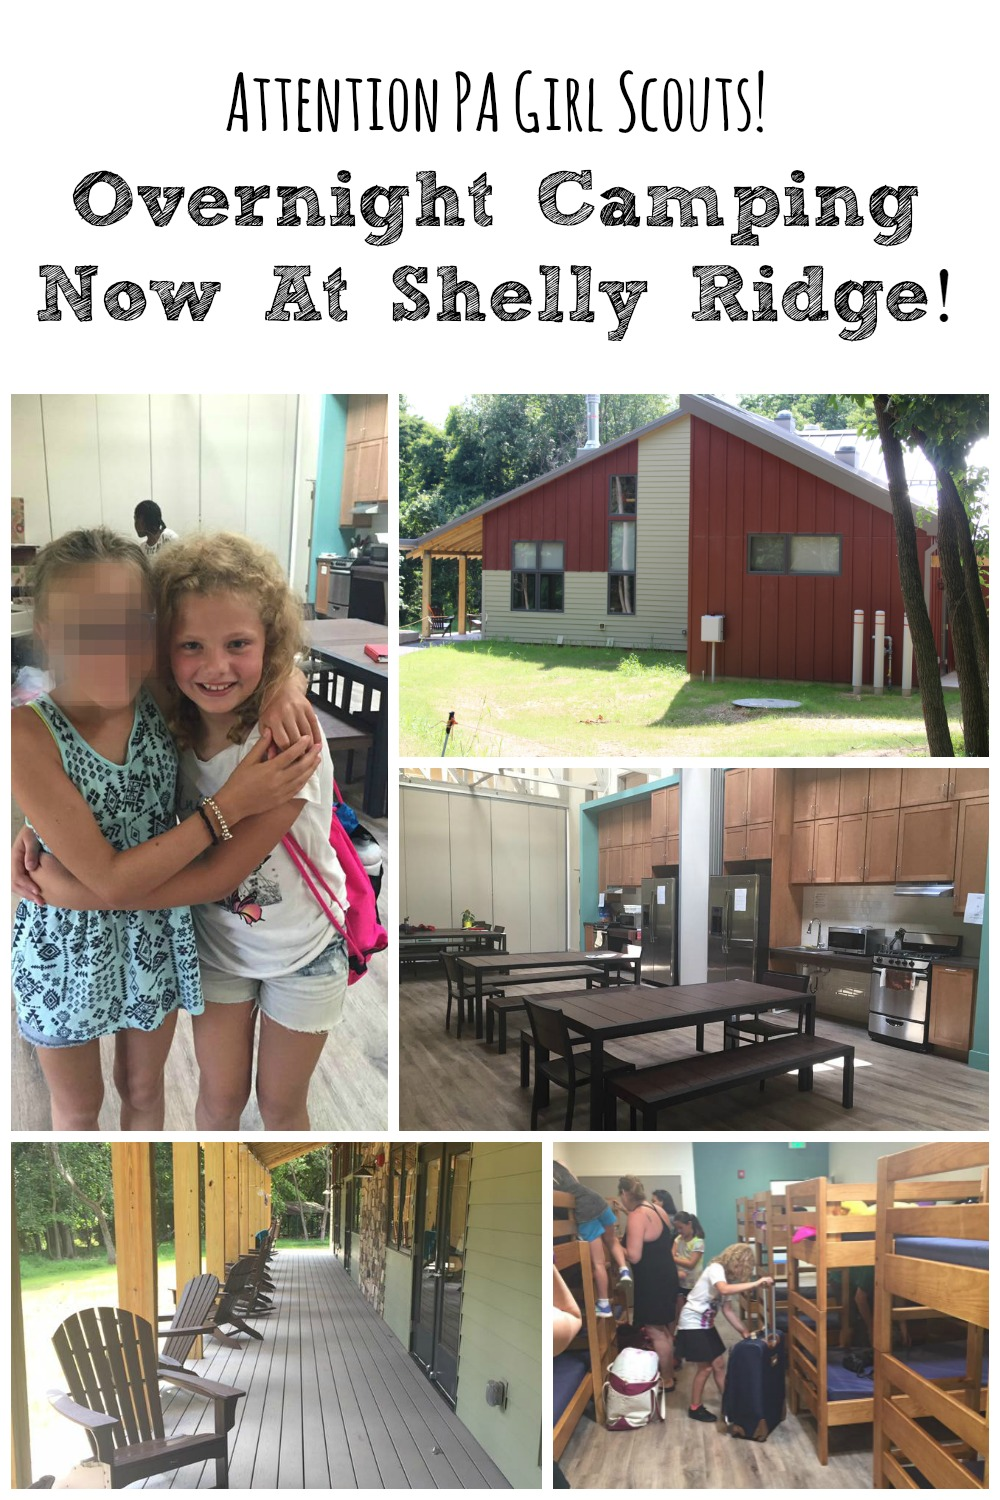 For Girl Scouts in Southeastern PA, there is a closer option for overnight camping - now you can do it right at Shelly Ridge - and do it in comfort!